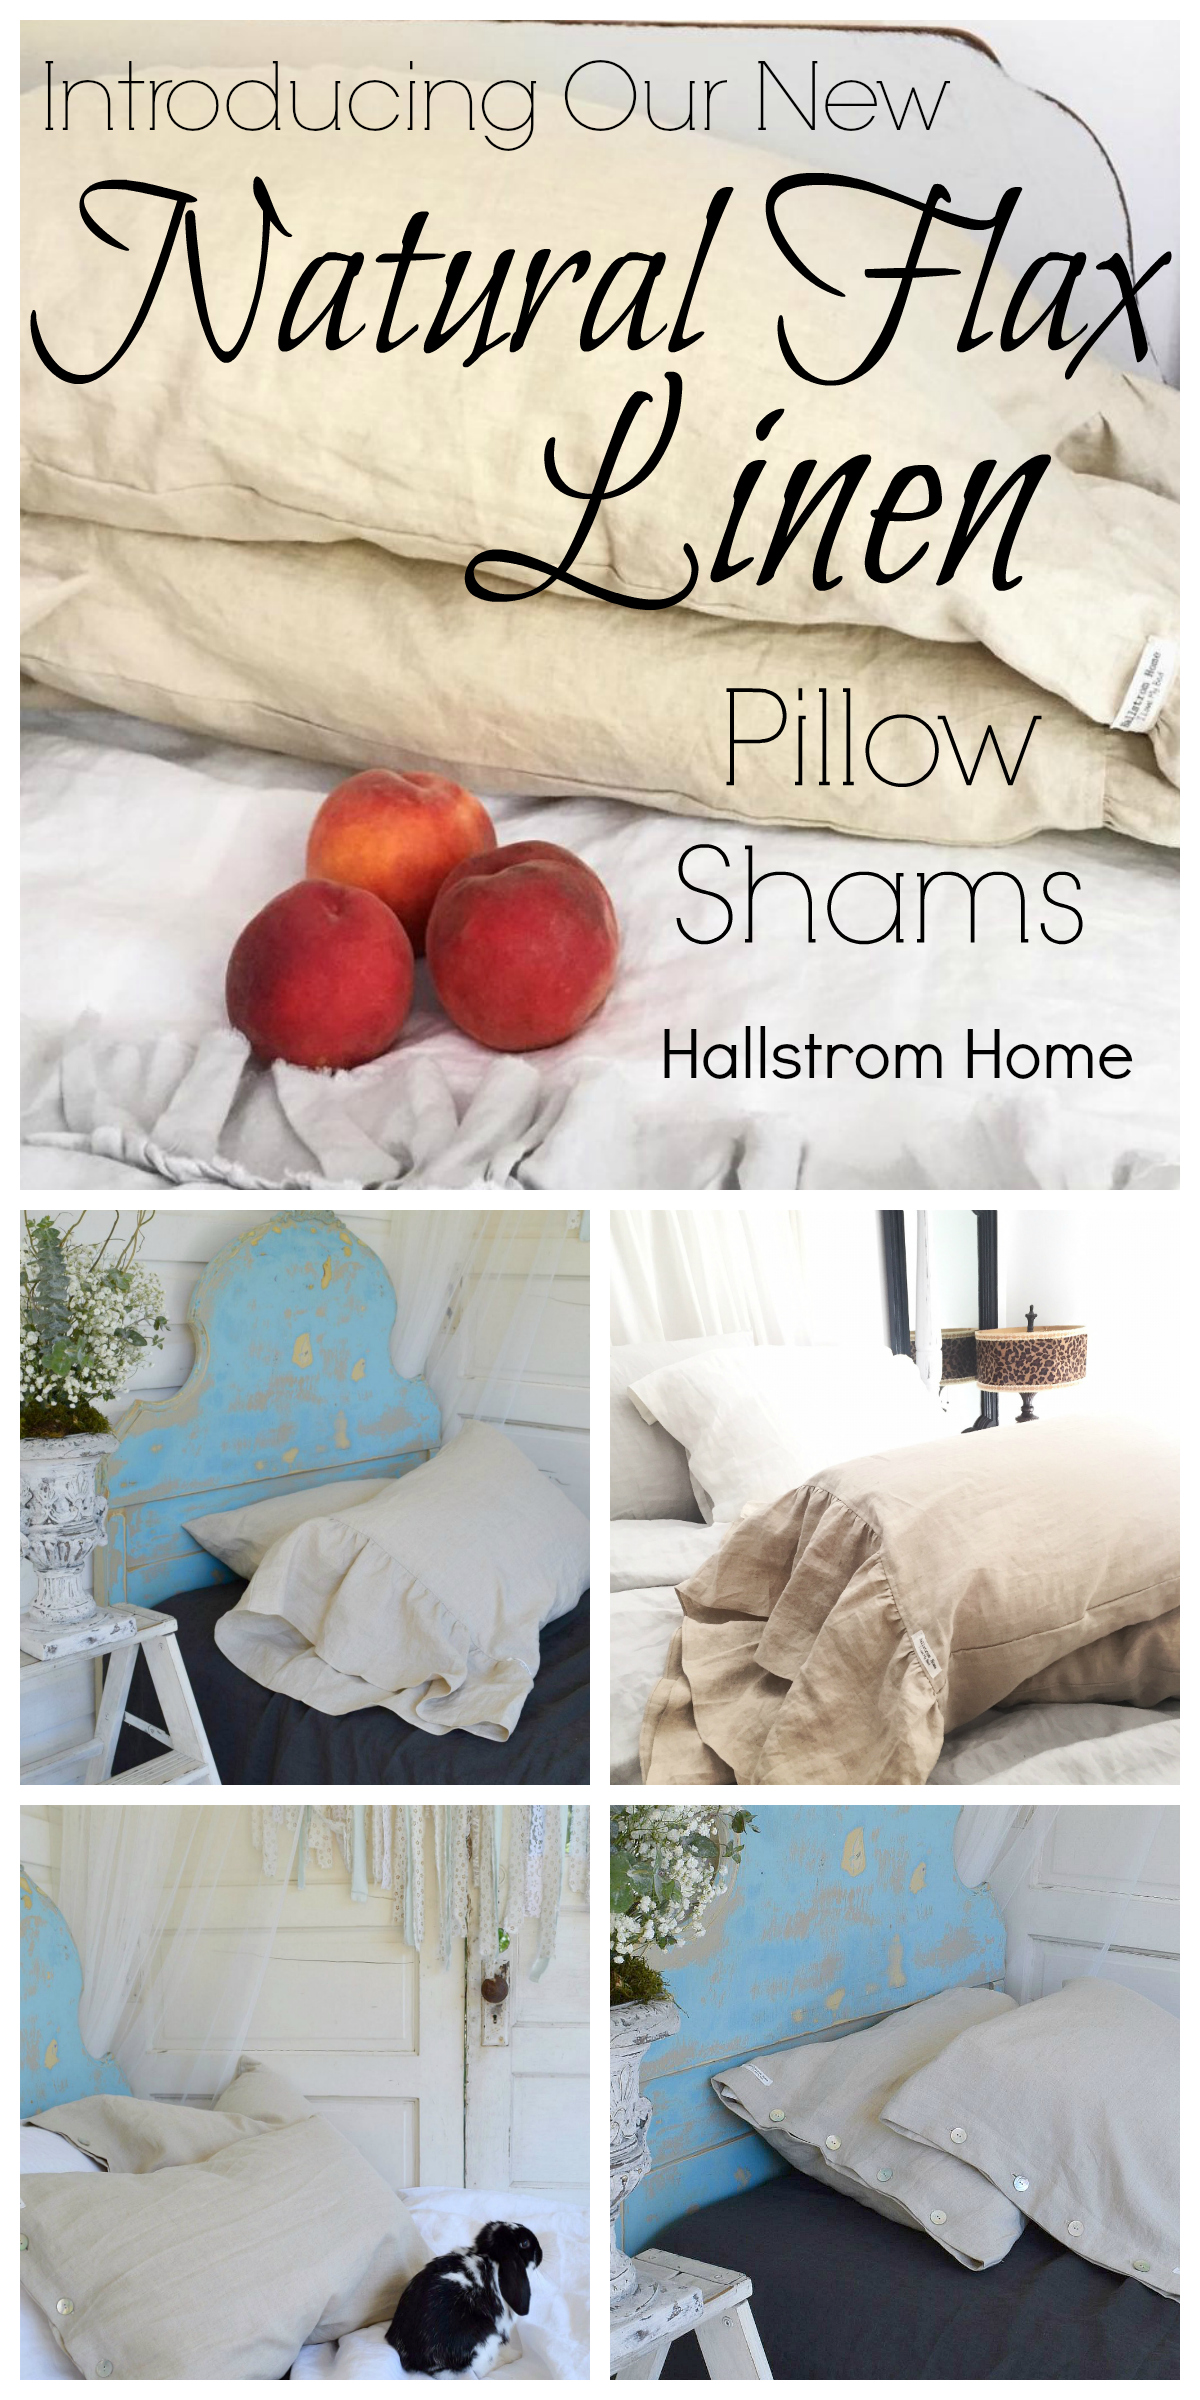 Introducing Our Natural Flax Linen Pillow Shams|bedding|luxury bedding|ruffled linen pillow shams|hallstrom home products|farmhouse bedding|shabby chic bedding|linen pillow shams|white farmhouse|linen bedding|hallstrom home